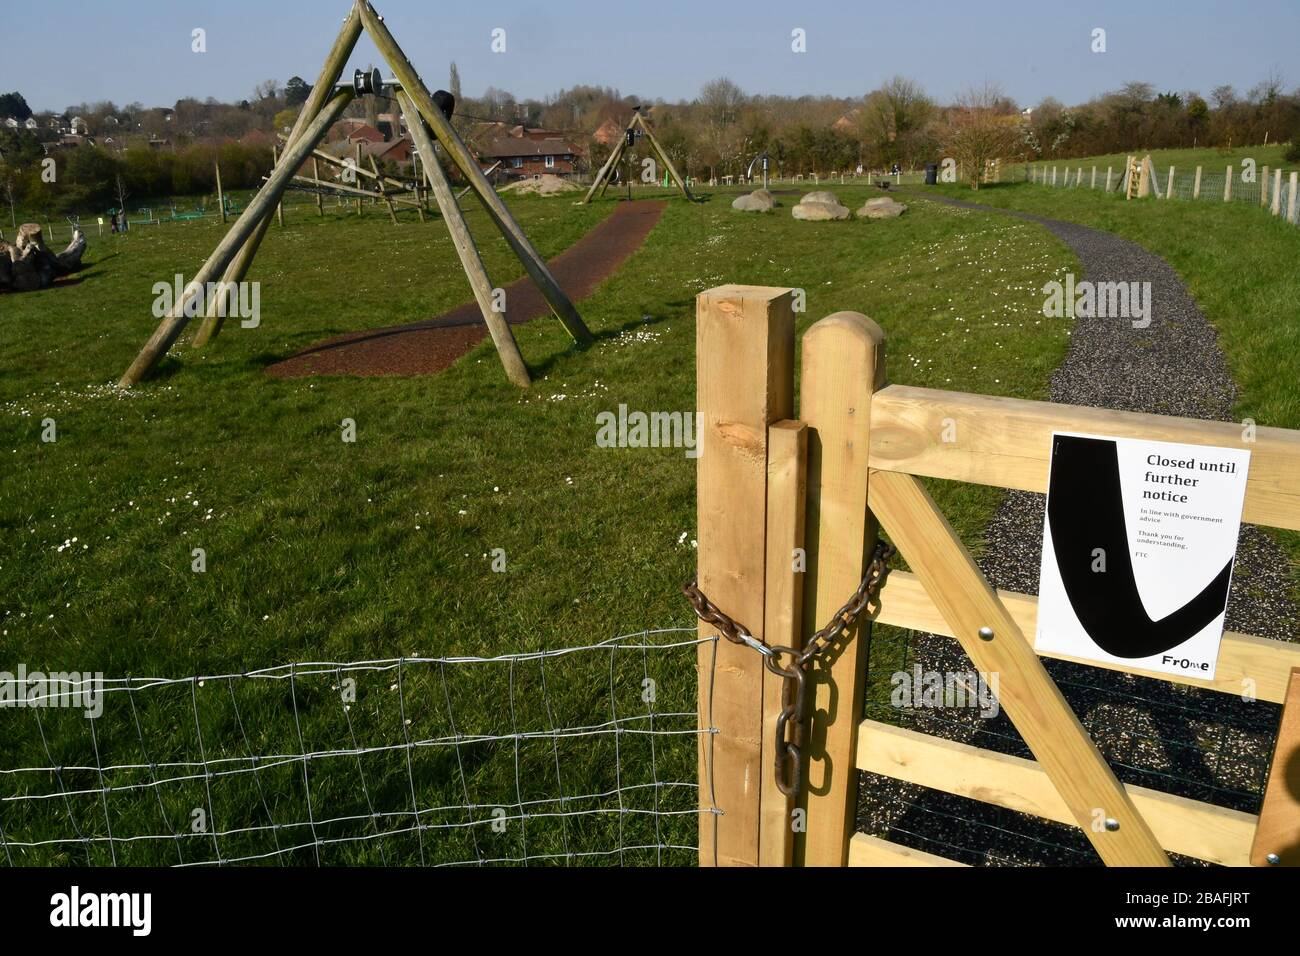 Childrens Play area closed, padlocked and empty due to the corona virus epidemic. 26th March 2020. Frome, Somerset,UK Stock Photo